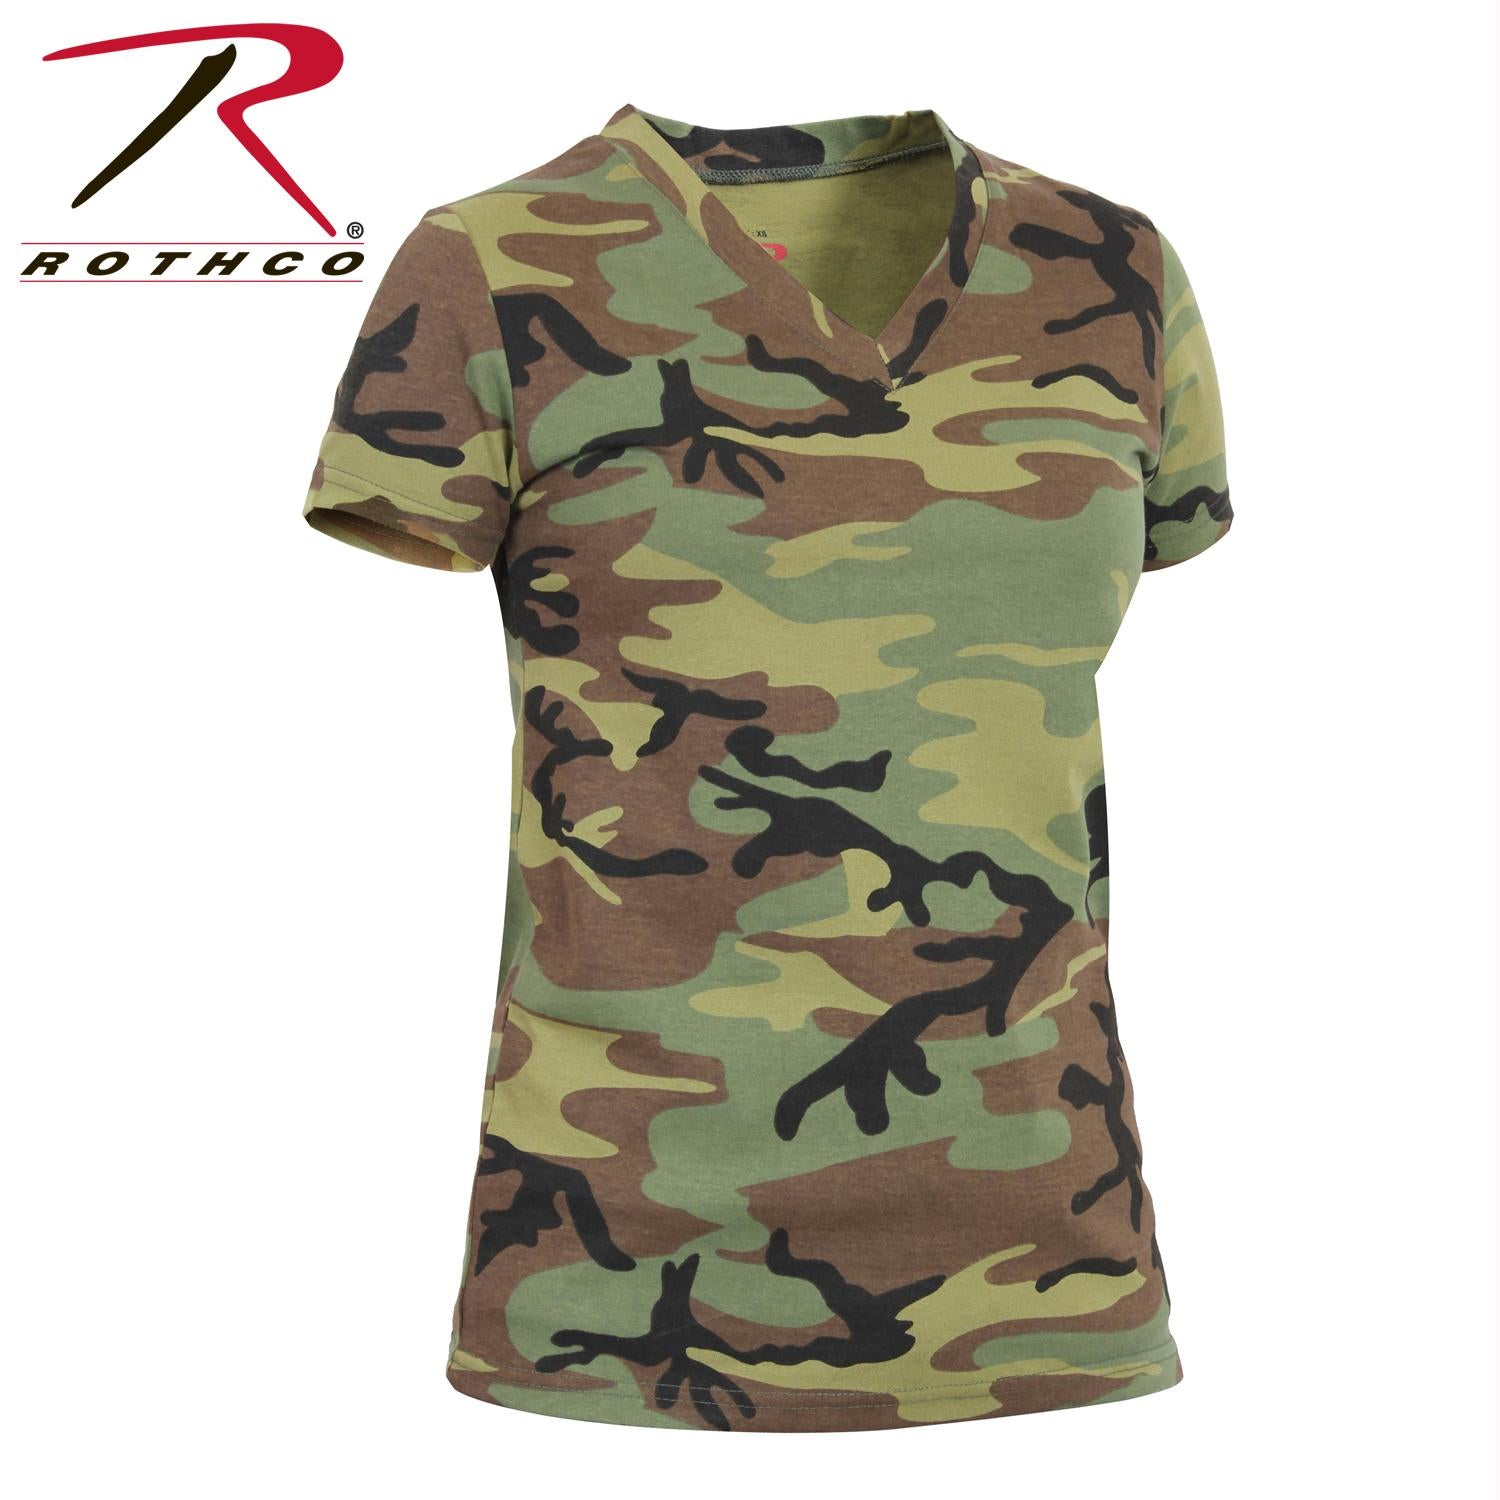 Rothco Womens Long Length Camo V-Neck T-Shirt - Woodland Camo / S